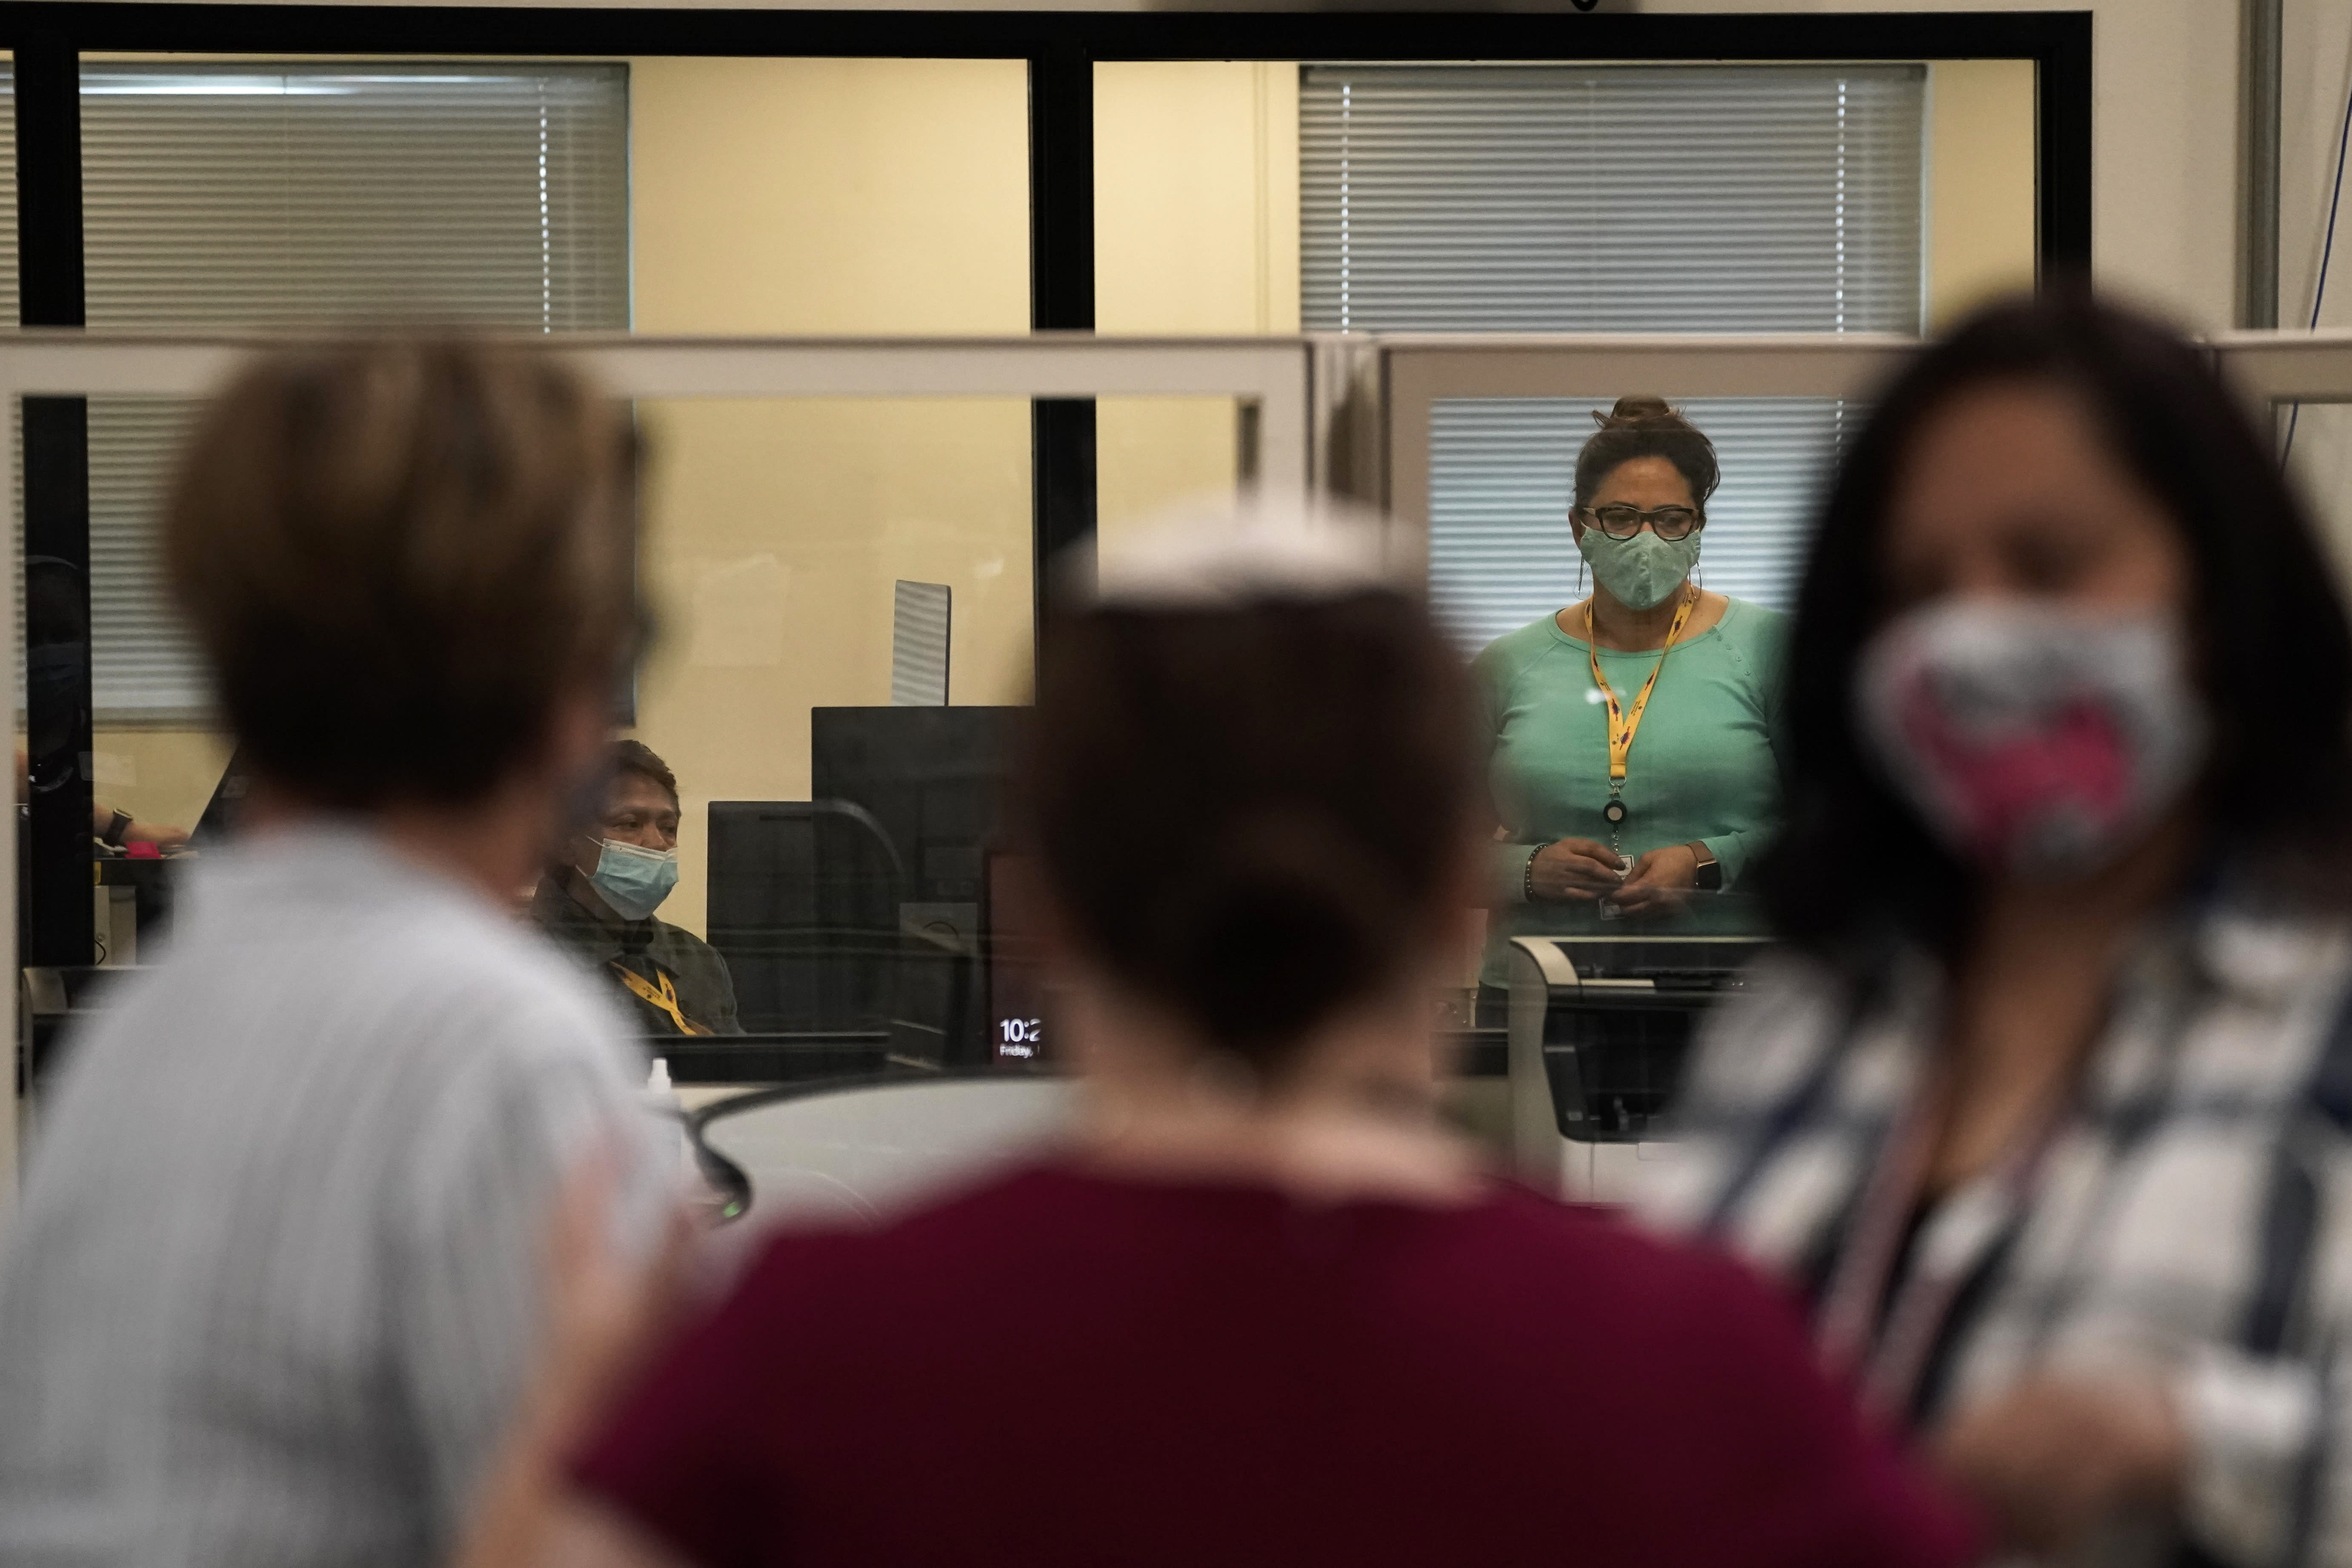 Observers, in foreground, chat as election workers work in a tabulation room at the Clark County Election Department in North Las Vegas, Friday, Nov. 6, 2020. (AP Photo/Jae C. Hong)